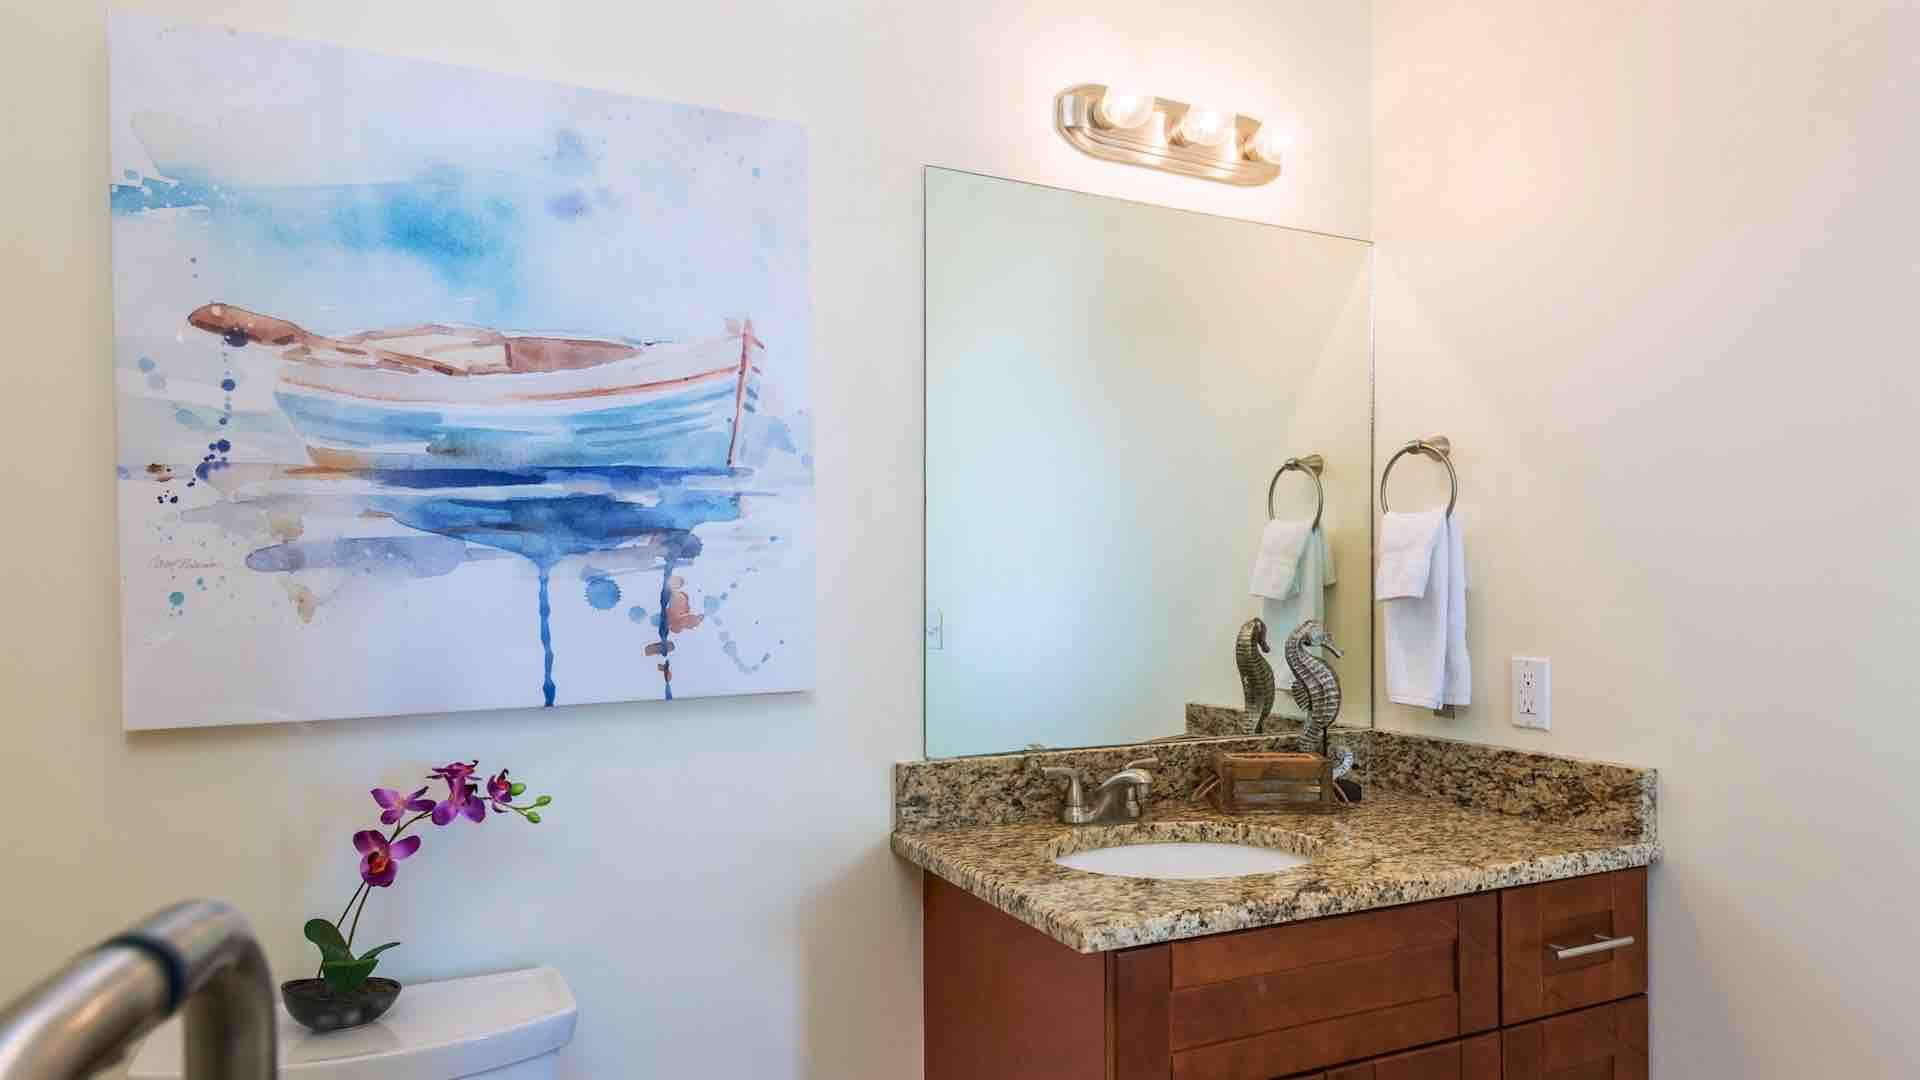 The second bathroom is located in the hallway between the second and third bedrooms...